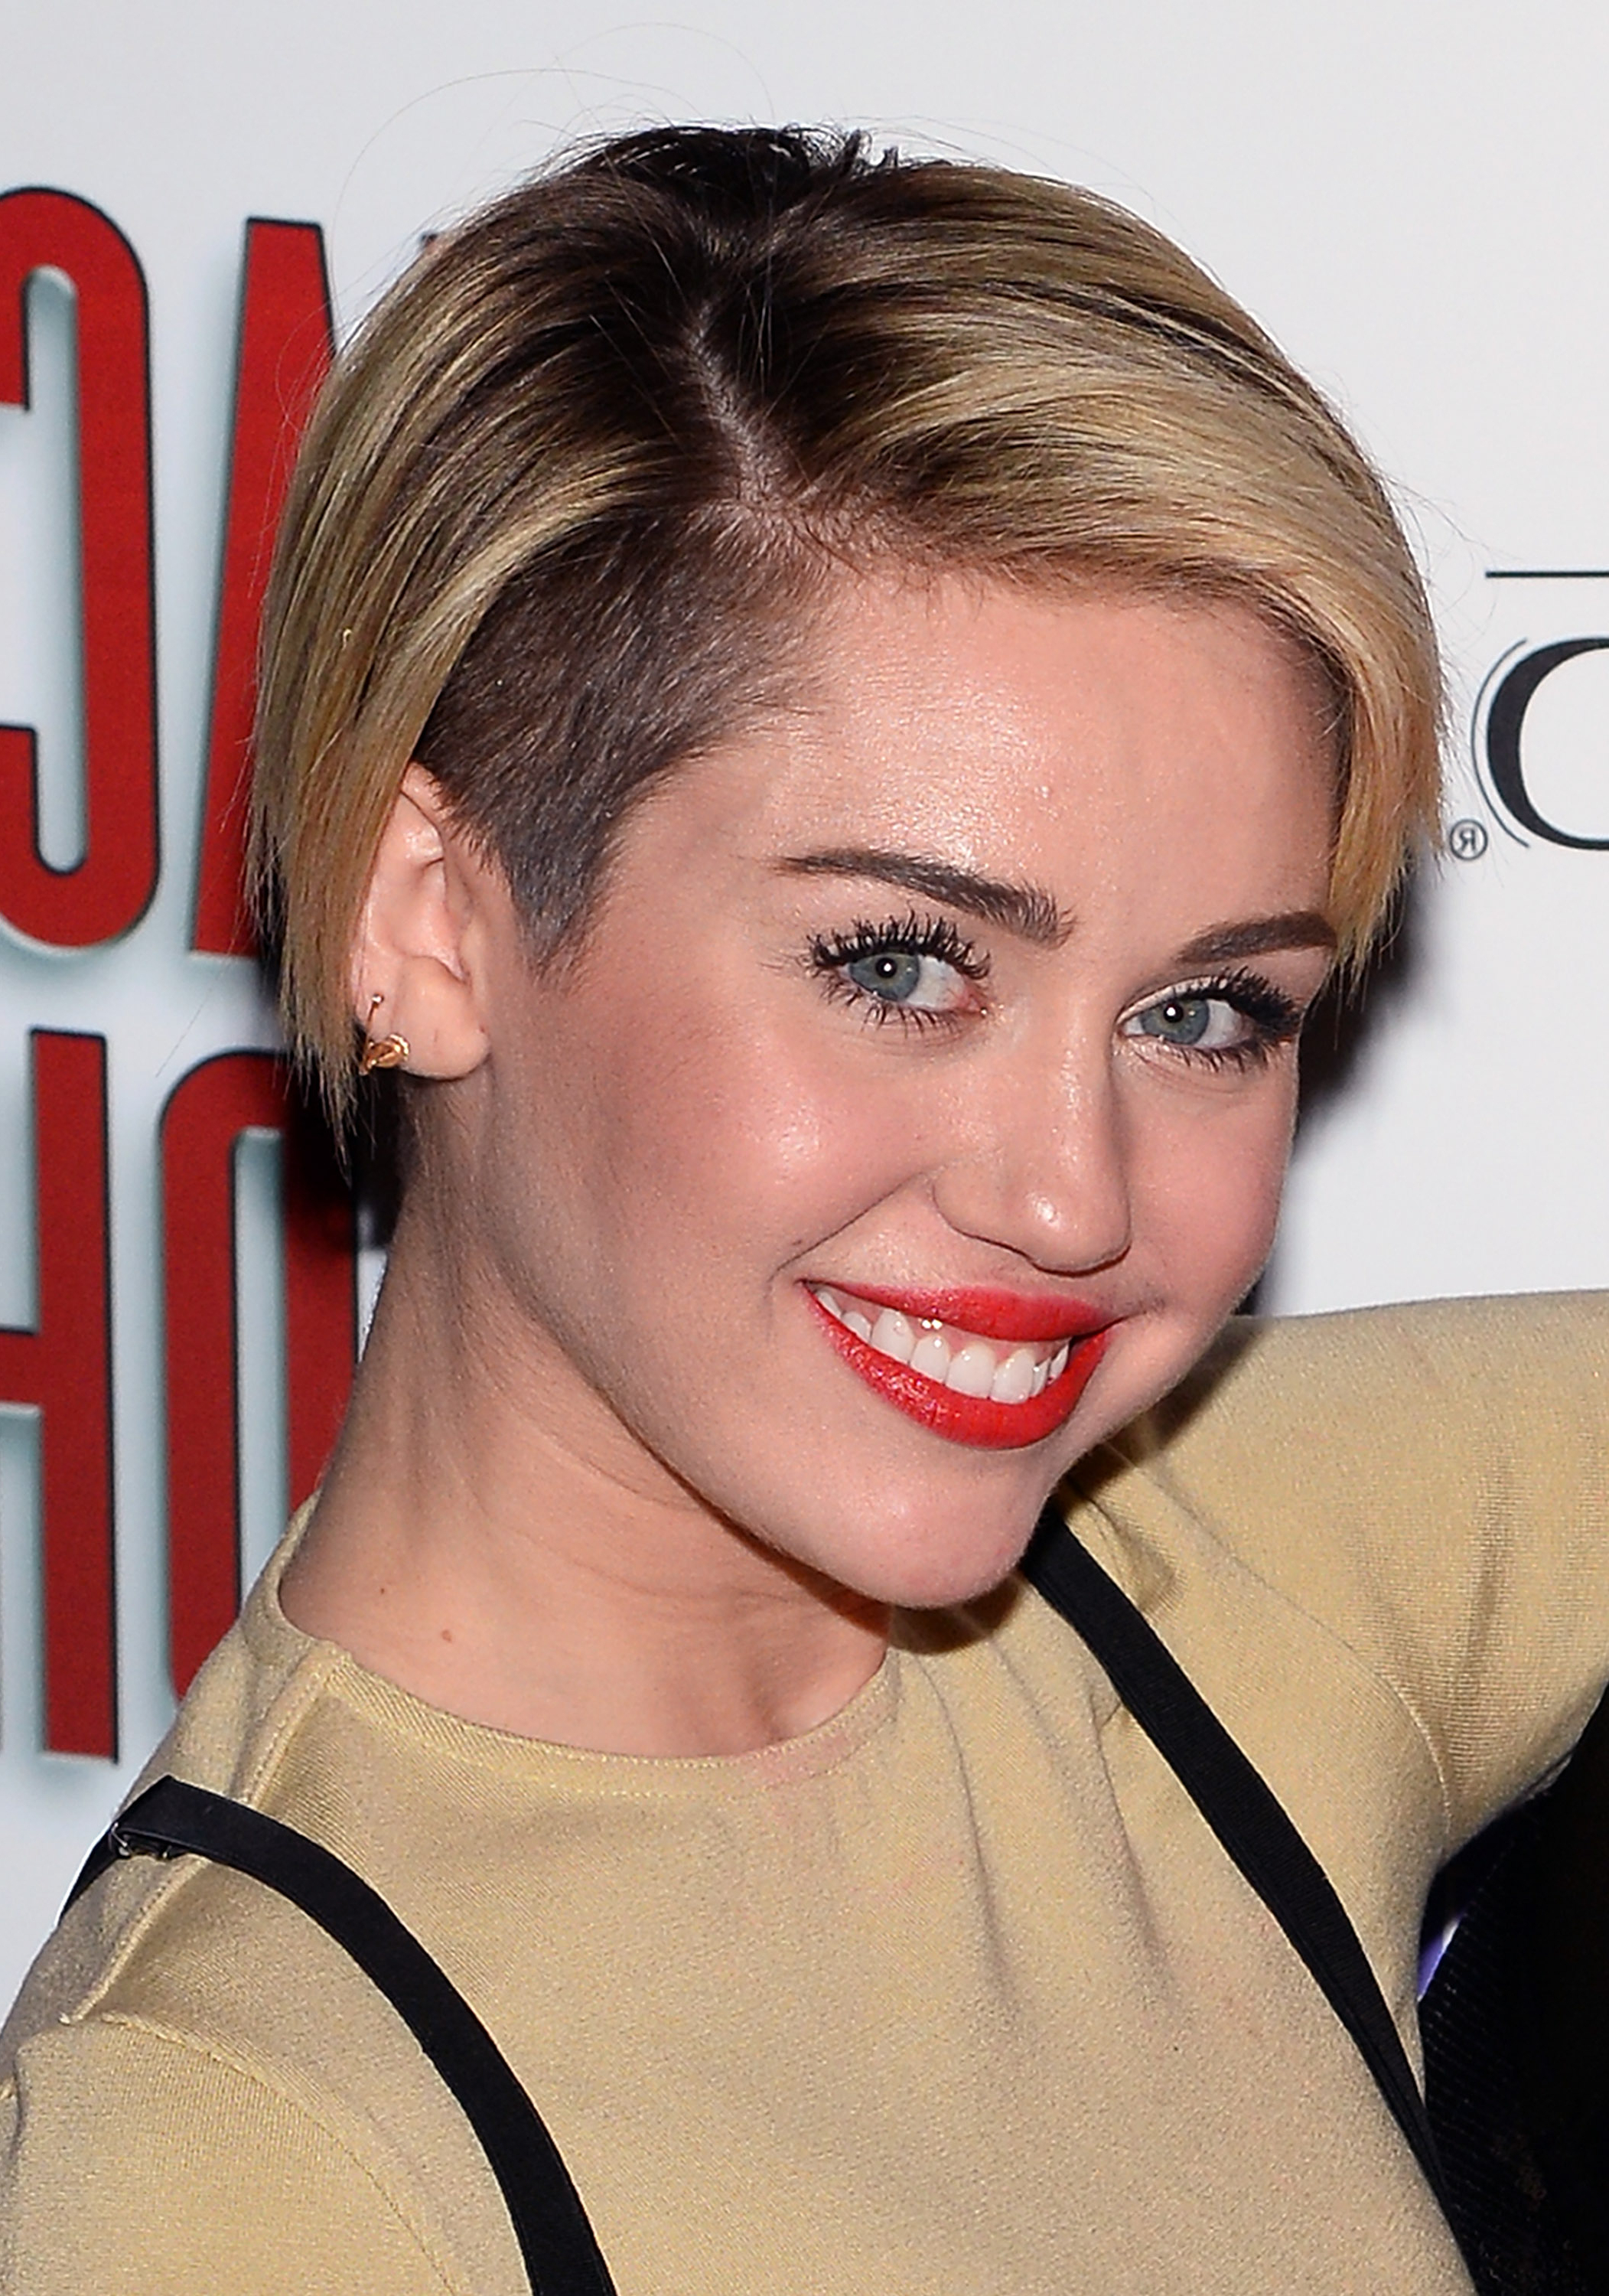 Miley Cyrus Grows Out Her Pixie Haircut   Stylecaster Pertaining To Short Hairstyles For Growing Out A Pixie Cut (View 23 of 25)